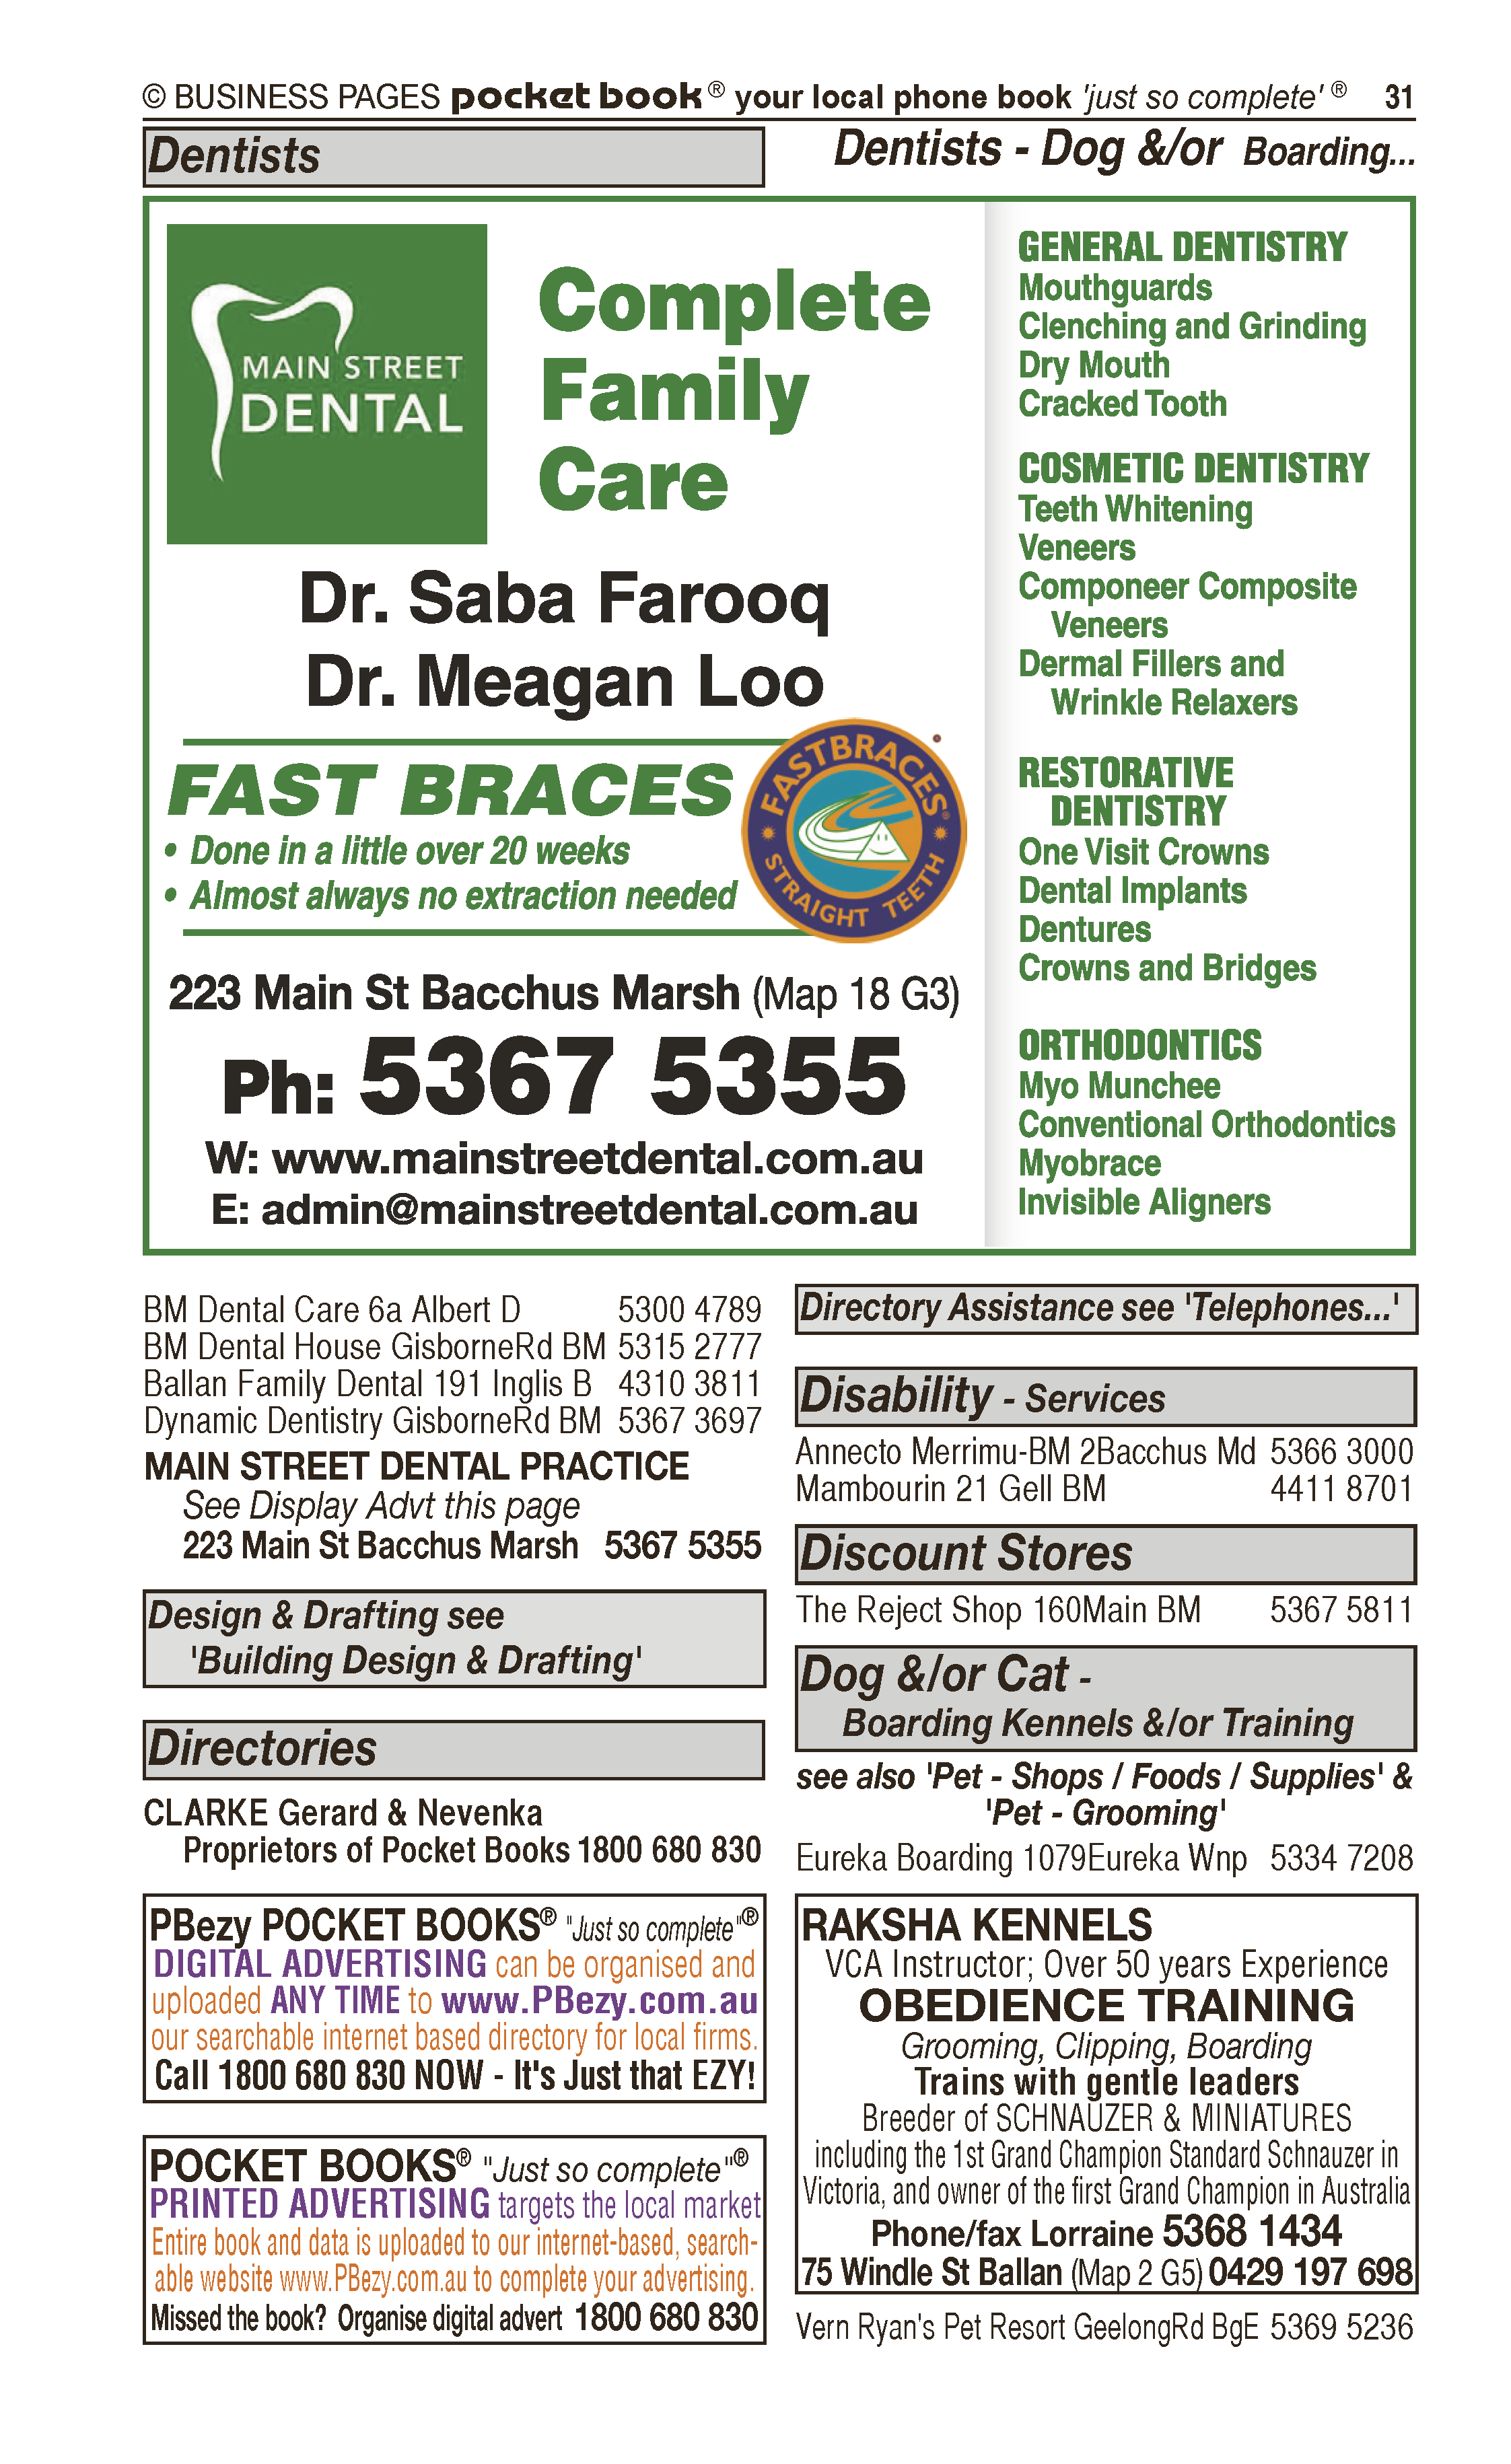 Embroiders Guild of BM | Art & Crafts Groups & Tuition in Bacchus Marsh | PBezy Pocket Books local directories - page 31